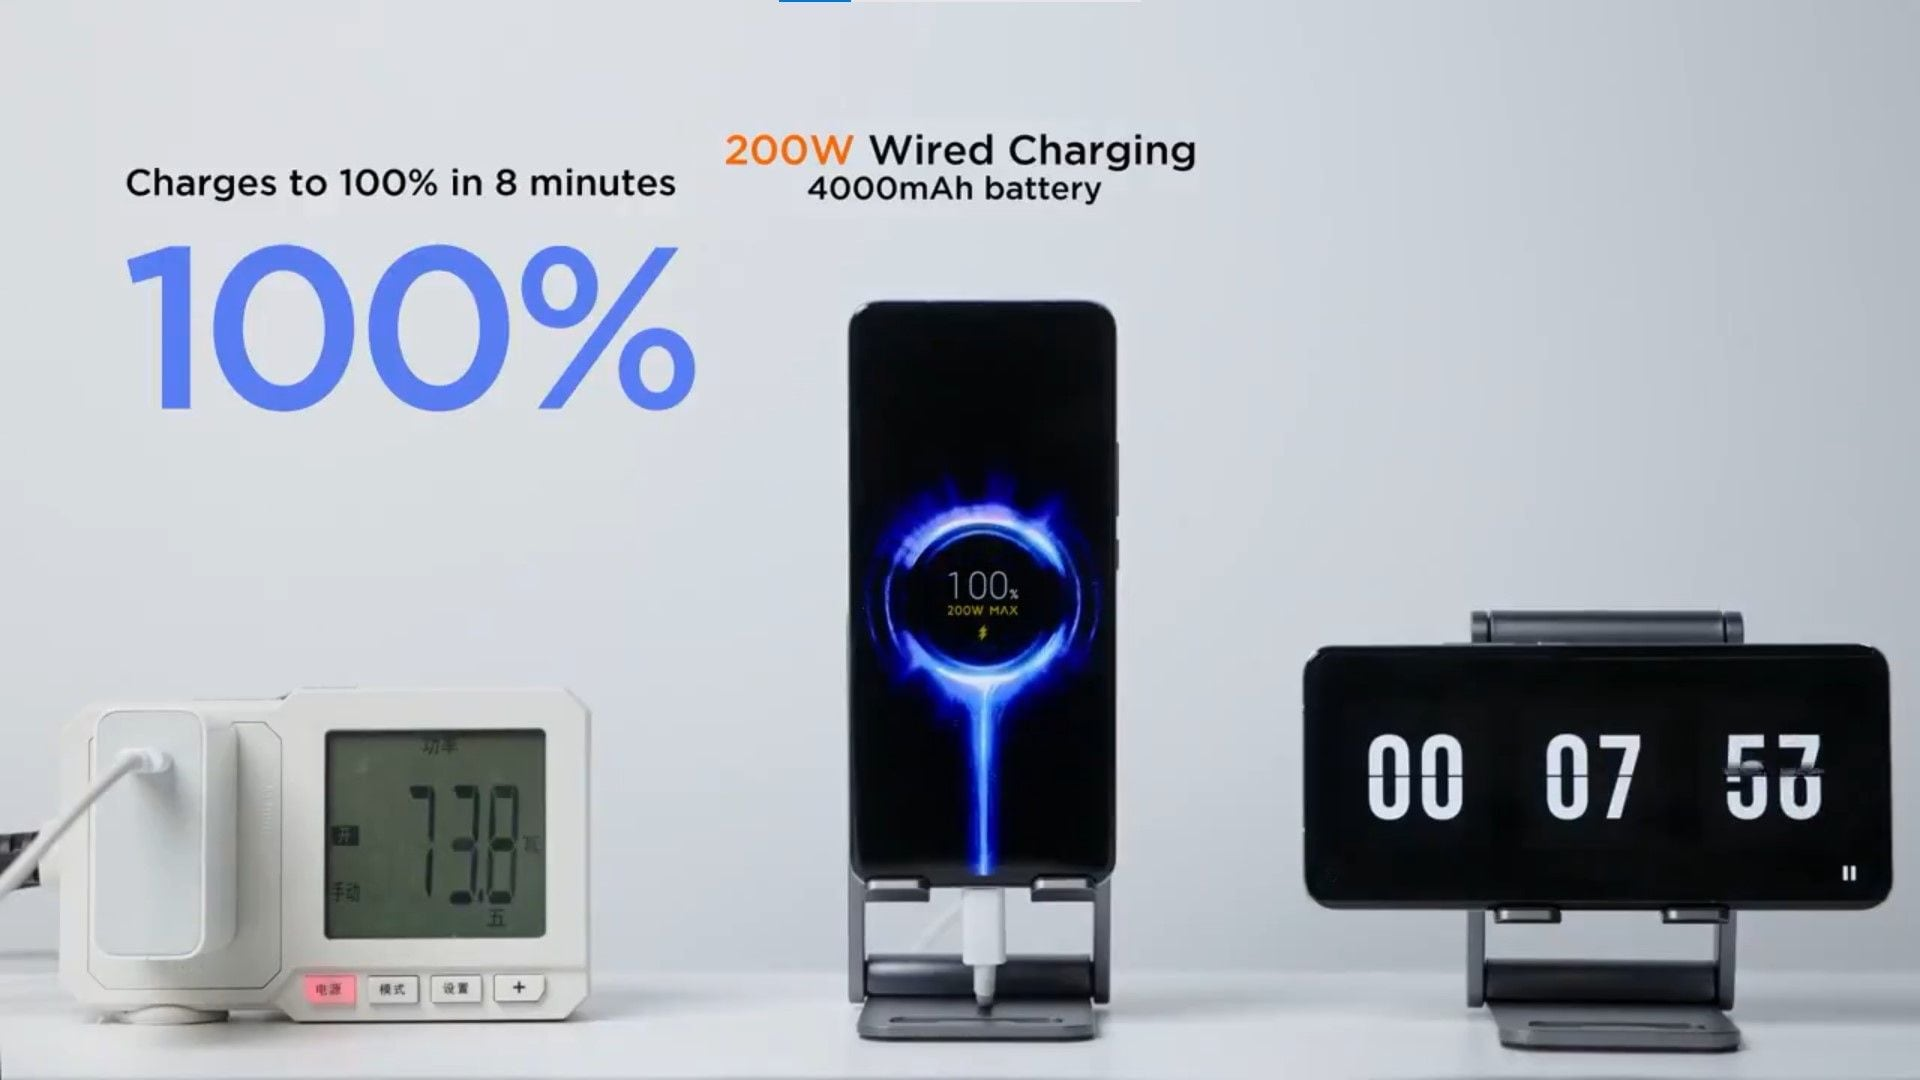 Xiaomi is the first OEM to offer 200 W fast charging for a smartphone. Image: Xiaomi